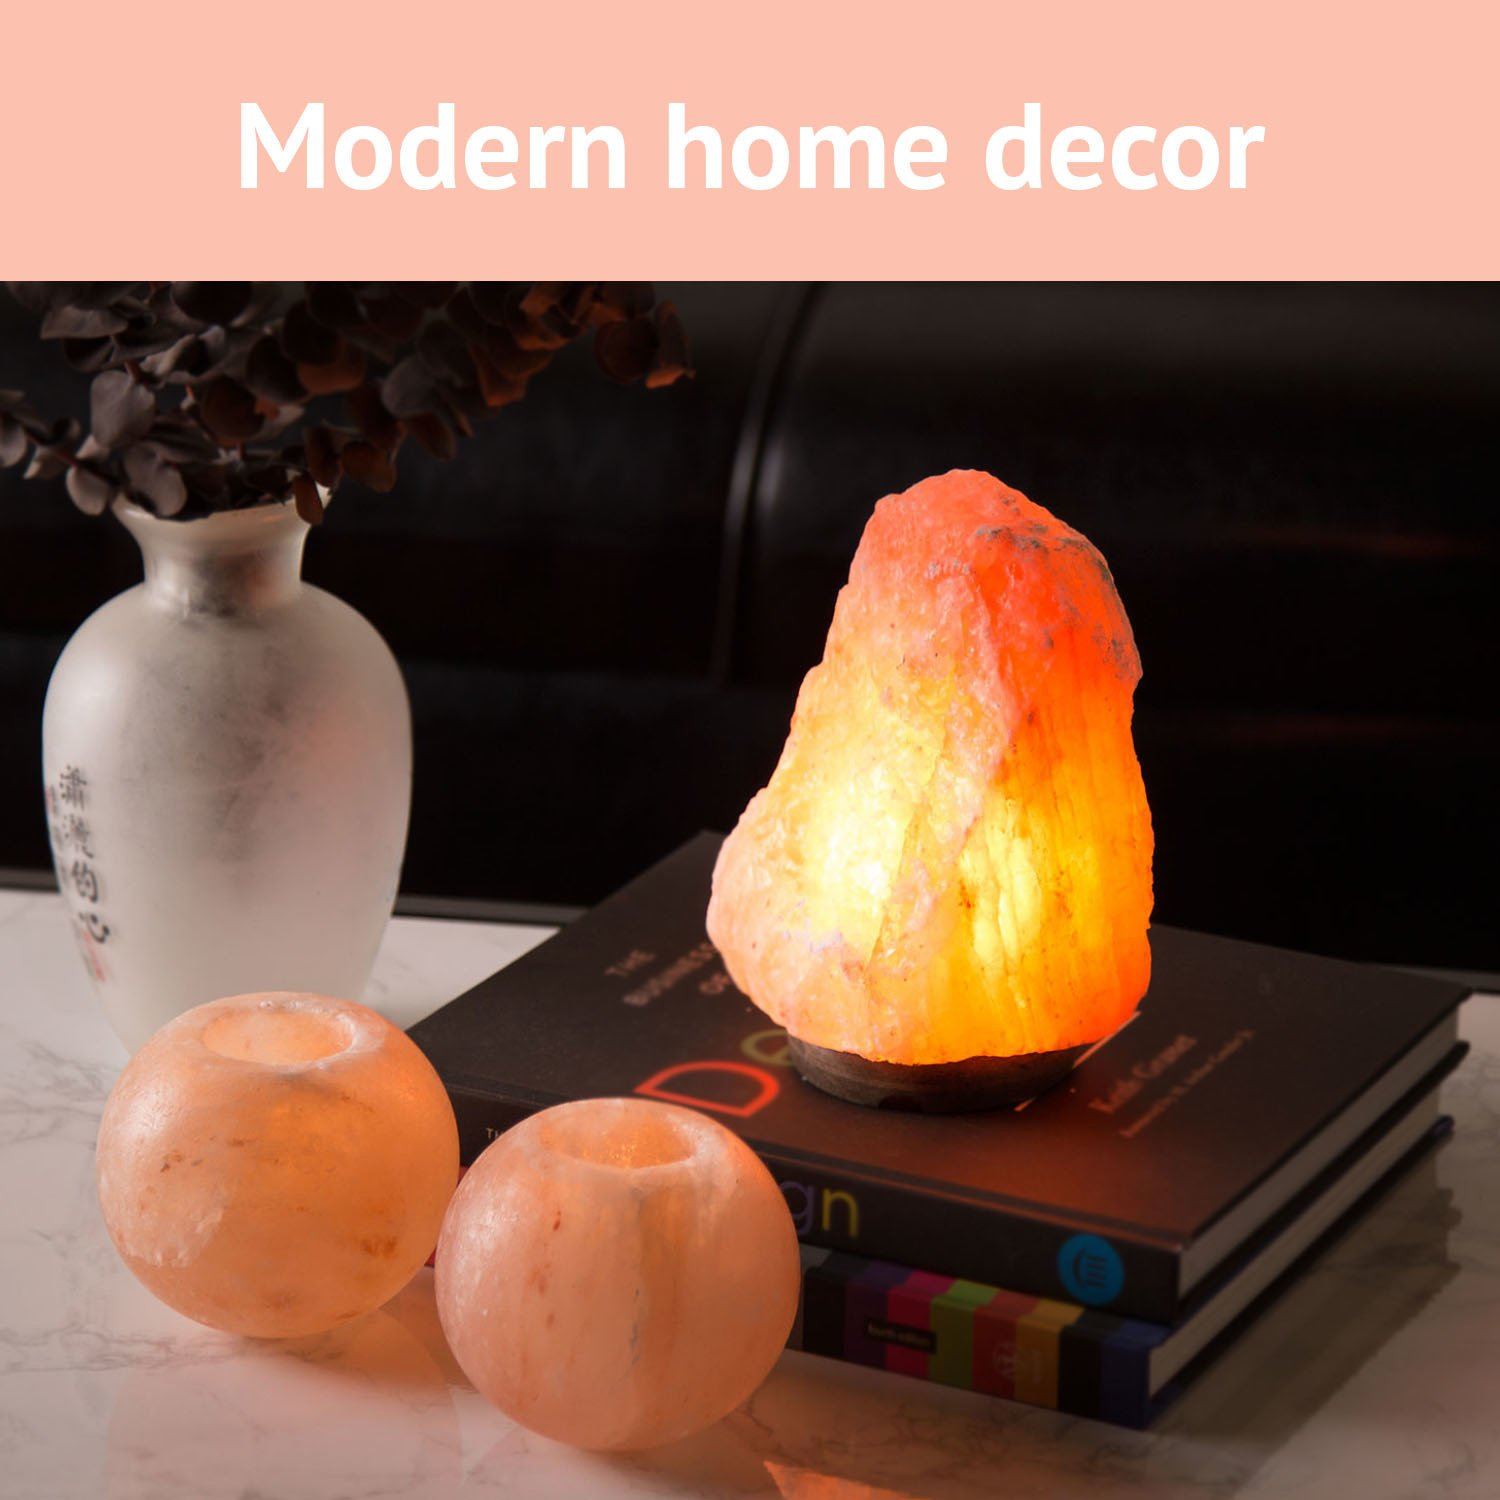 Crystal Allies Natural Himalayan Salt Lamp and 2 Piece Tea Candle Holder Combo with Dimmable Cord and Bulb - Choose Your Design (1 Piece Salt Lamp ~6'') by Crystal Allies Gallery (Image #4)